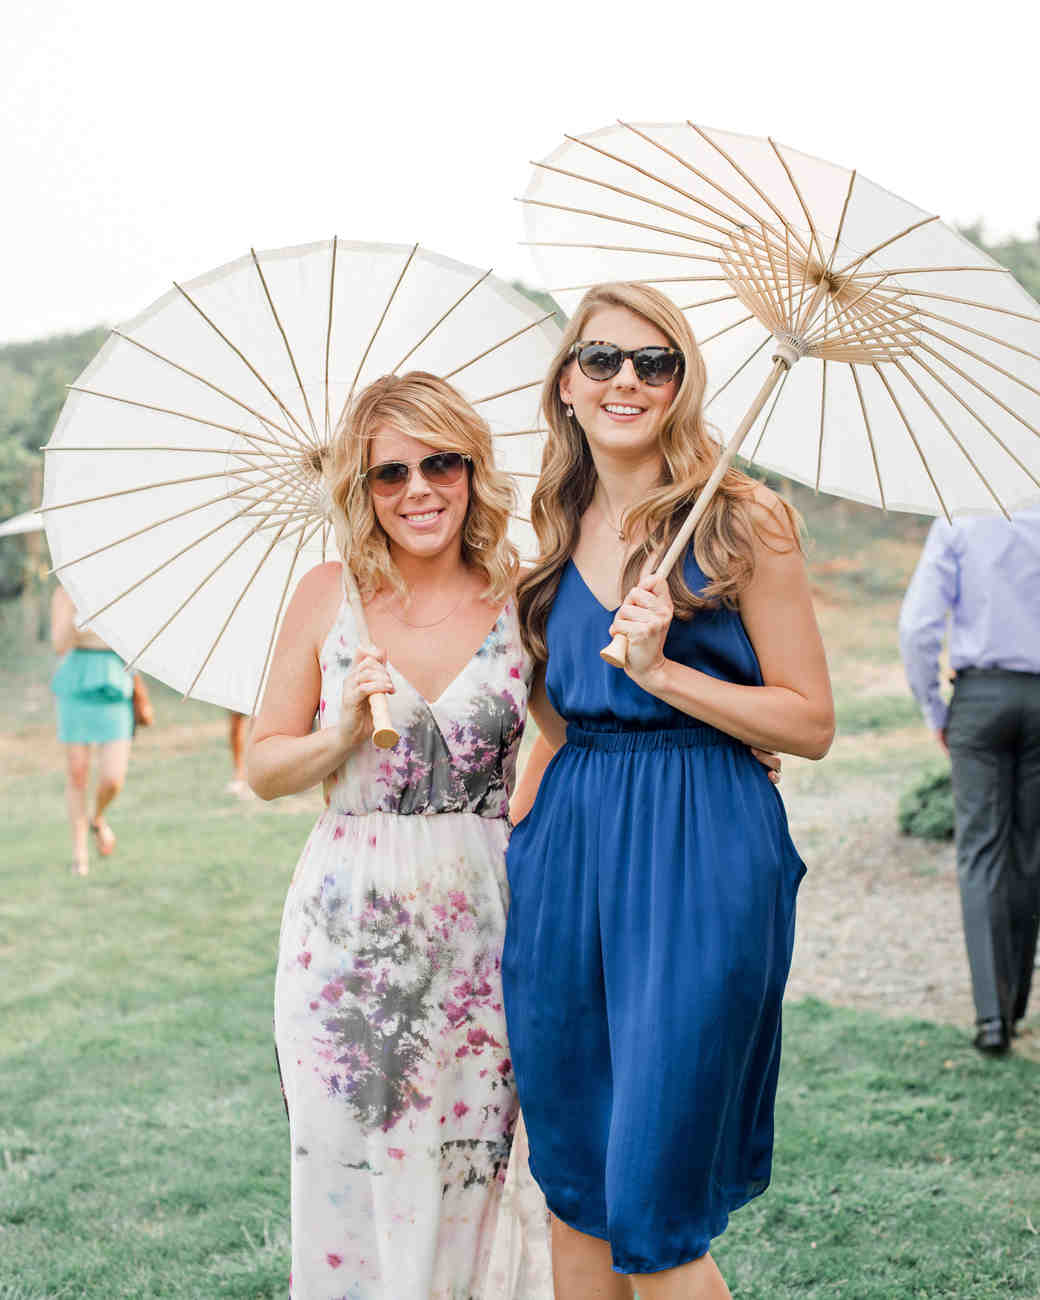 summer wedding guests sleeveless dresses parasols